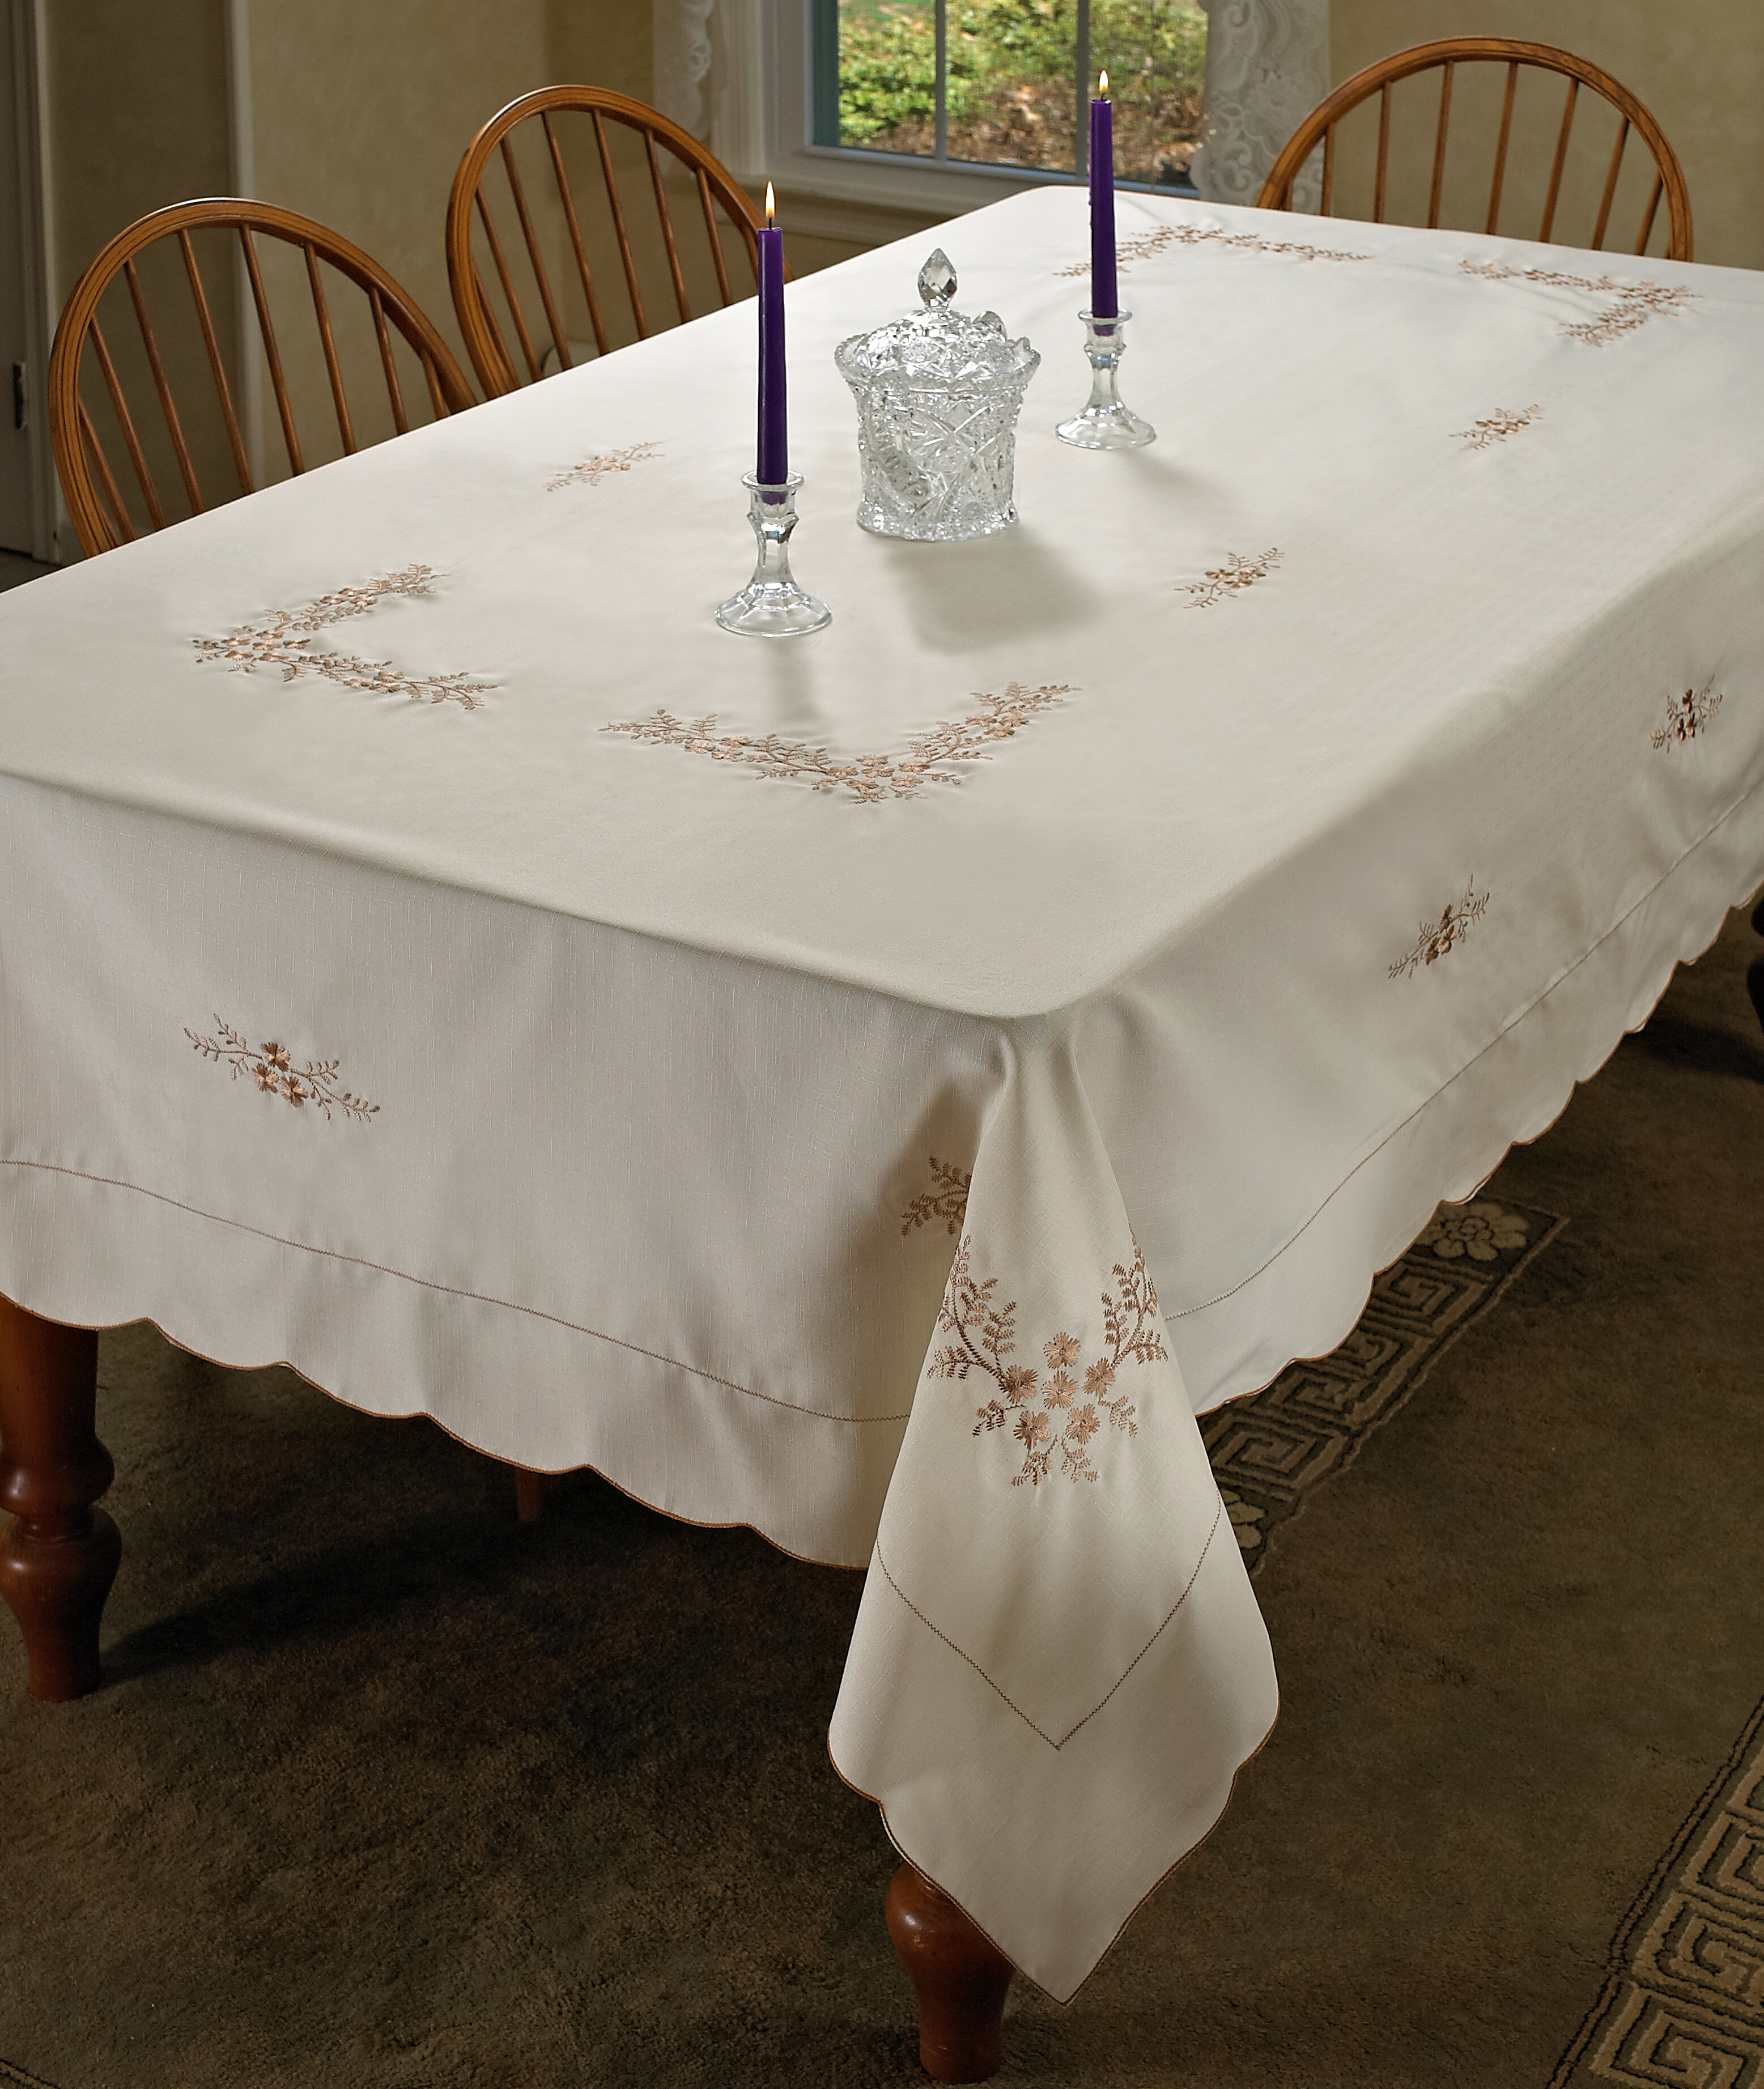 Round White Tablecloths Up To 65 Off Until 11 20 Wayfair Wayfair